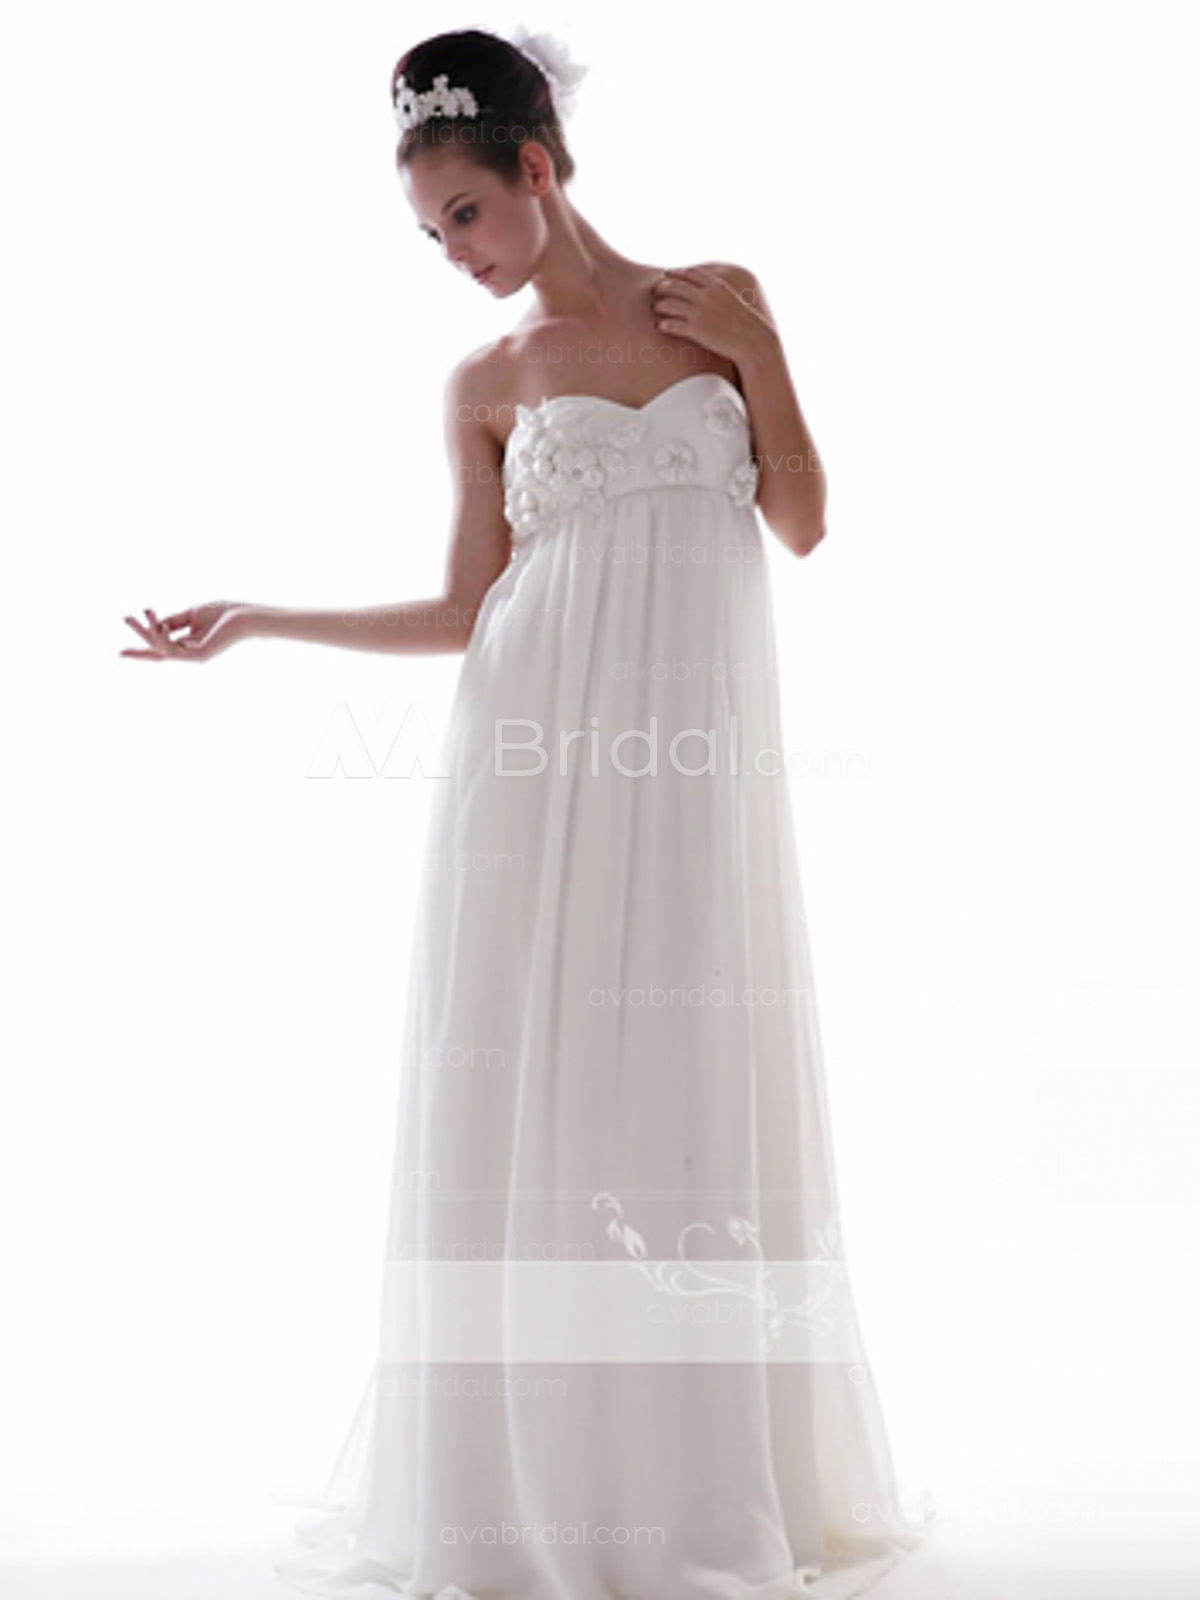 Grecian Wedding Dress.Grecian Wedding Dress Zara